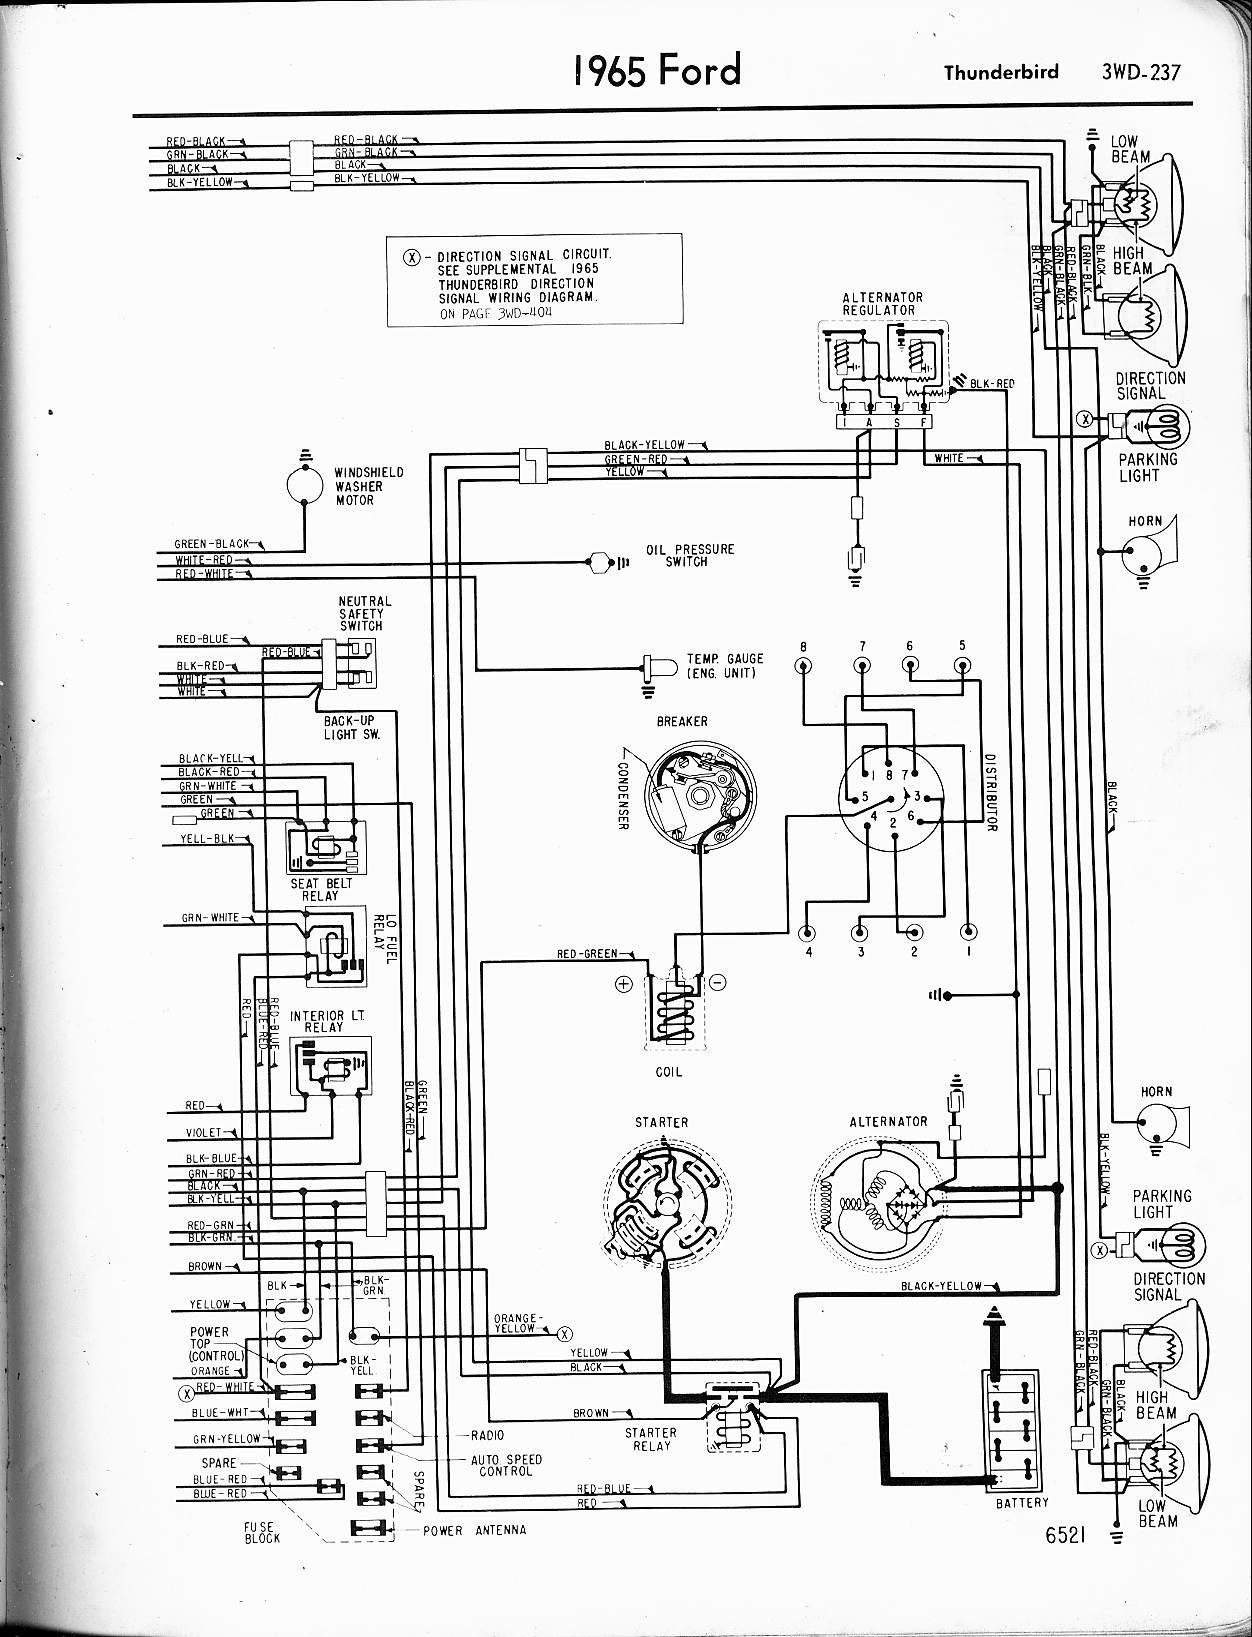 1995 Ford Alternator Wiring Diagram - Wiring Diagrams Folder  Ford Alternator Wiring Diagram on